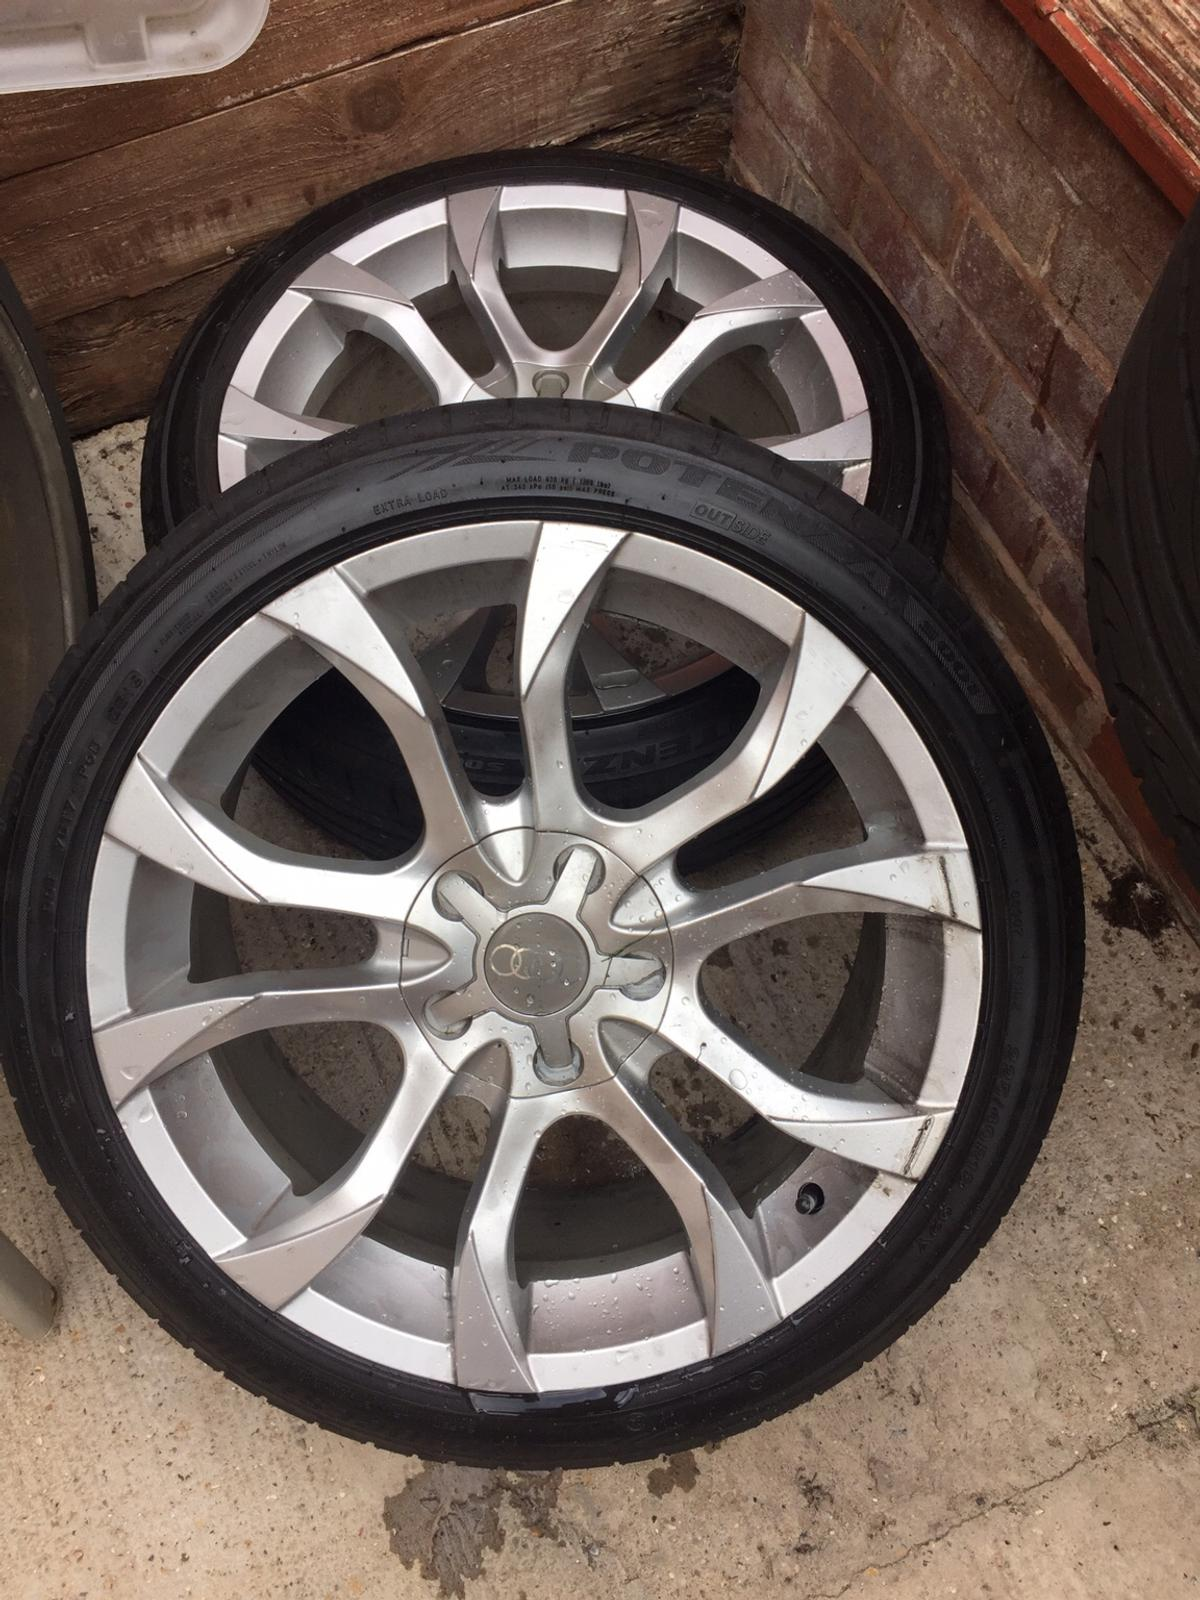 18 Inch Tires >> 18 Inch Tyres 225 40 18 Audi Wheels 5 100